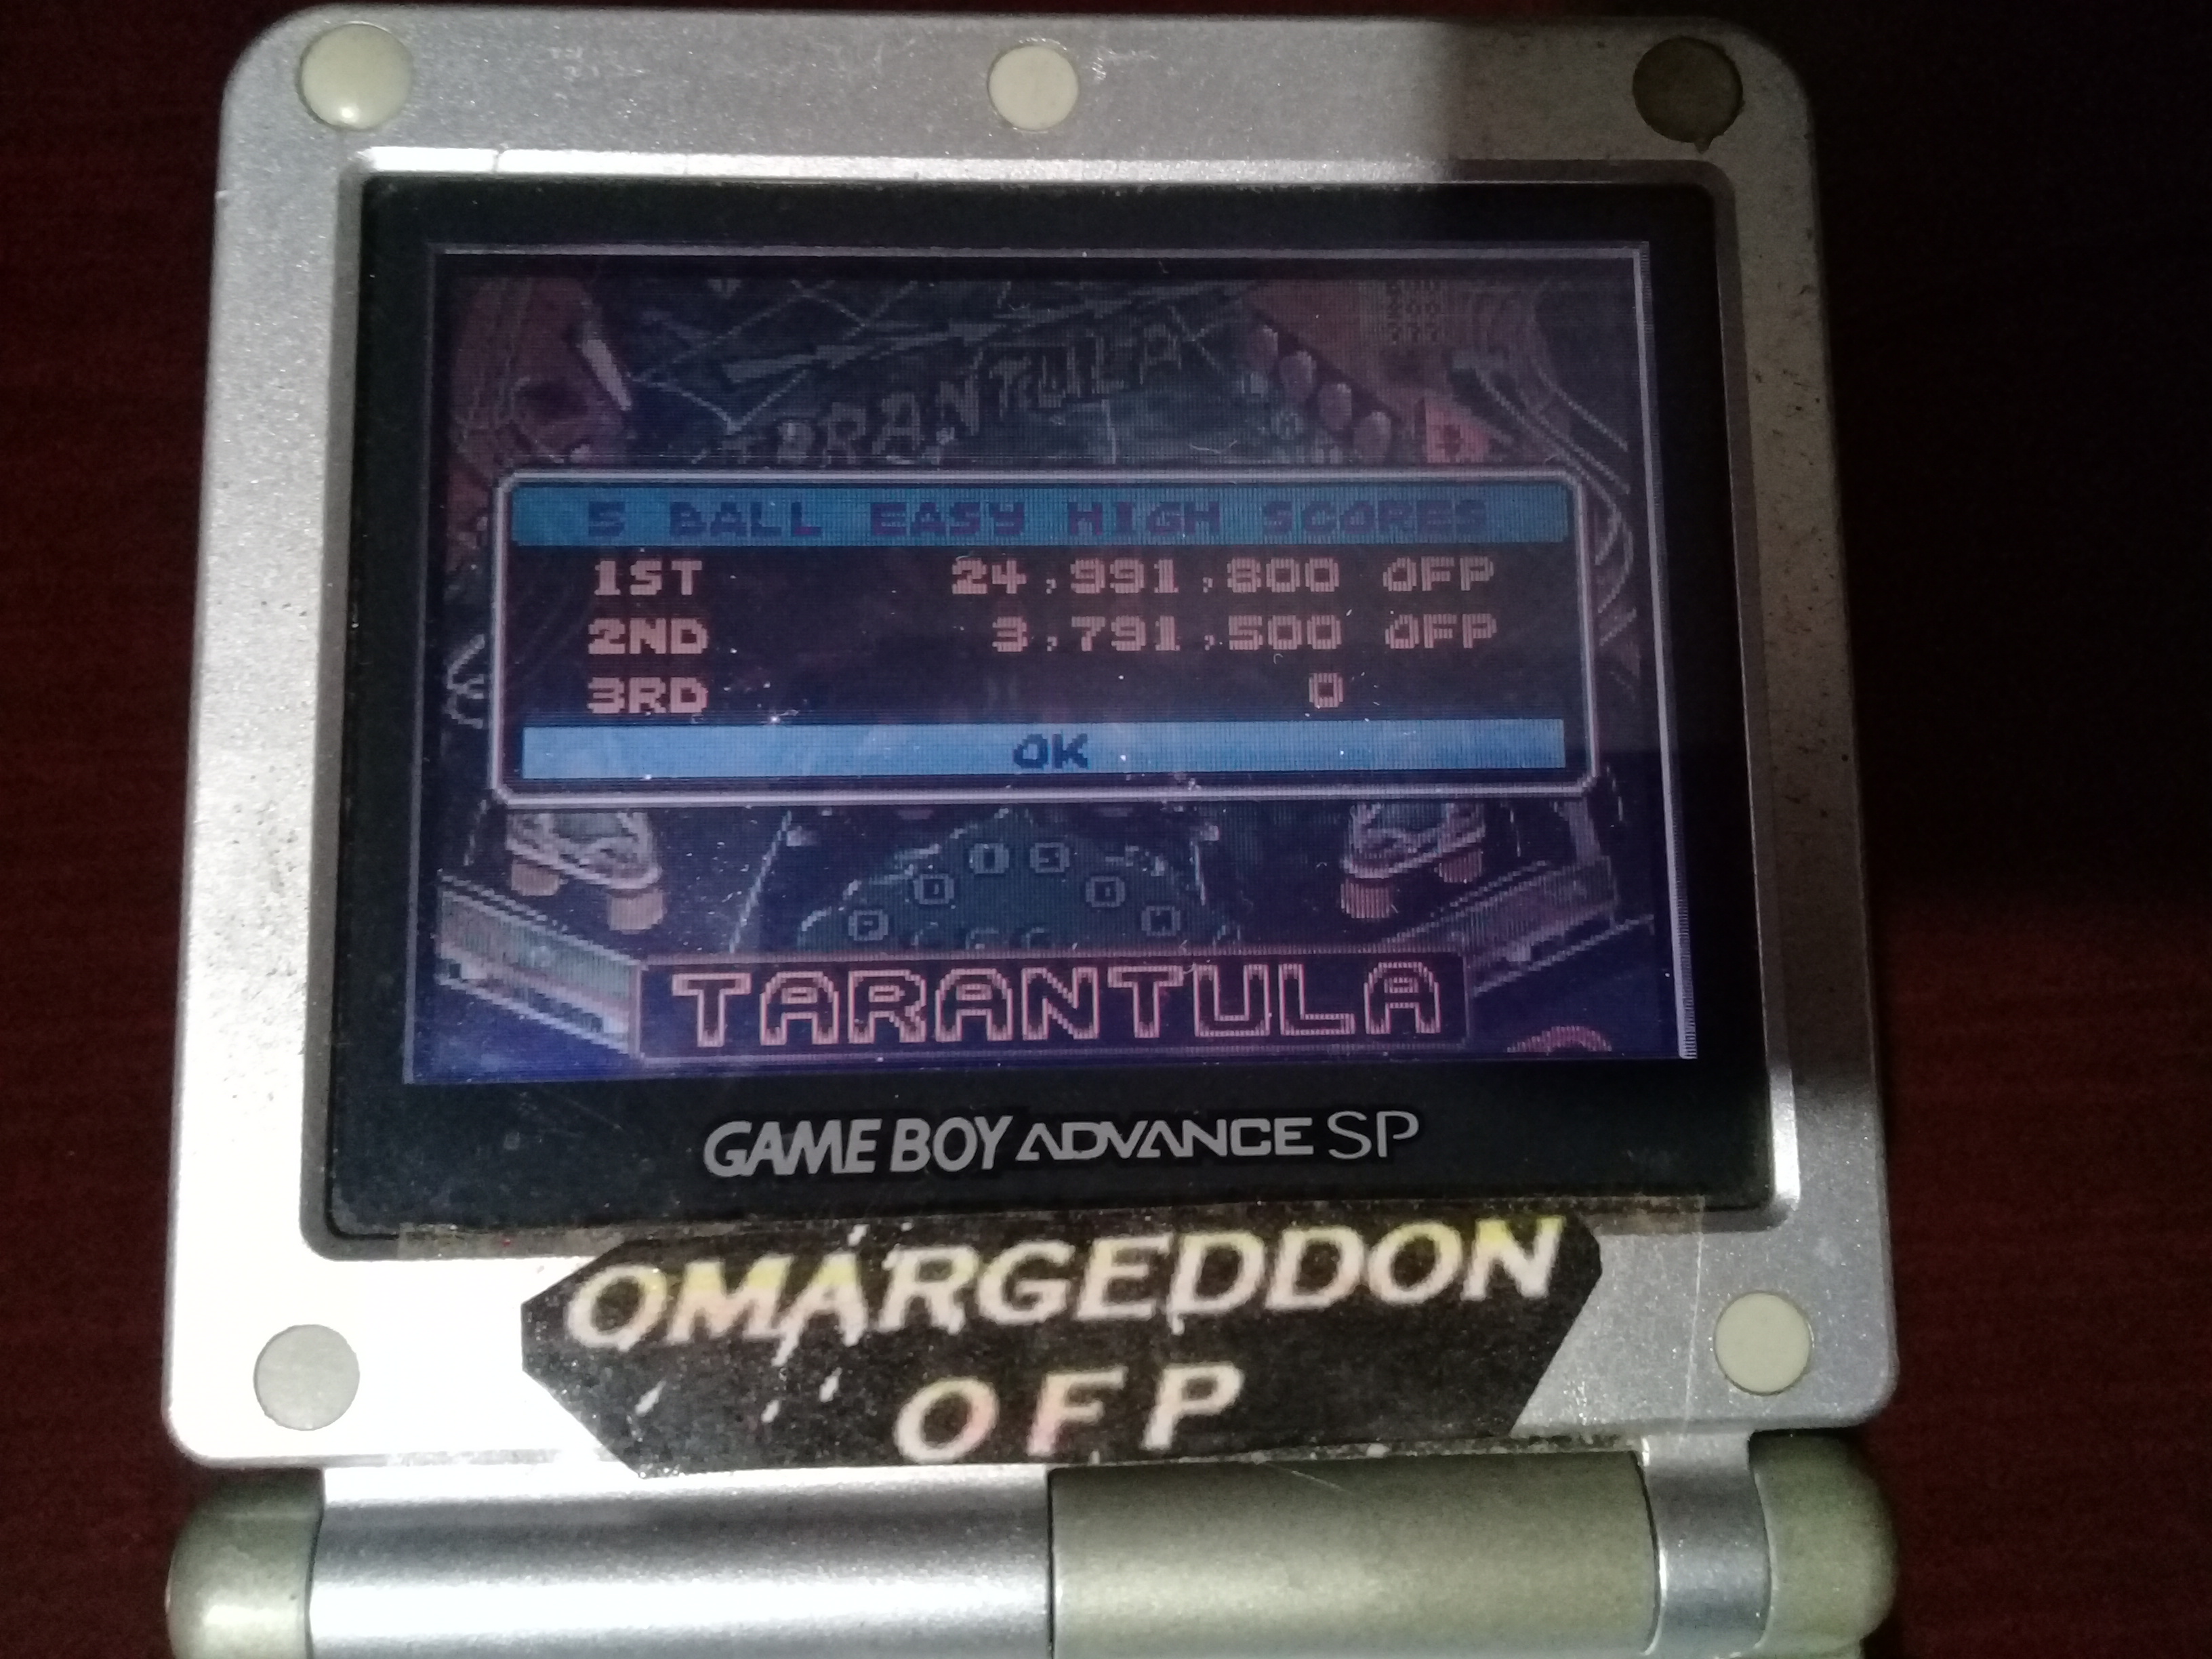 omargeddon: Pinball Advance: Tarantula [5 Balls] [Easy] (GBA) 24,991,800 points on 2019-11-02 01:19:47